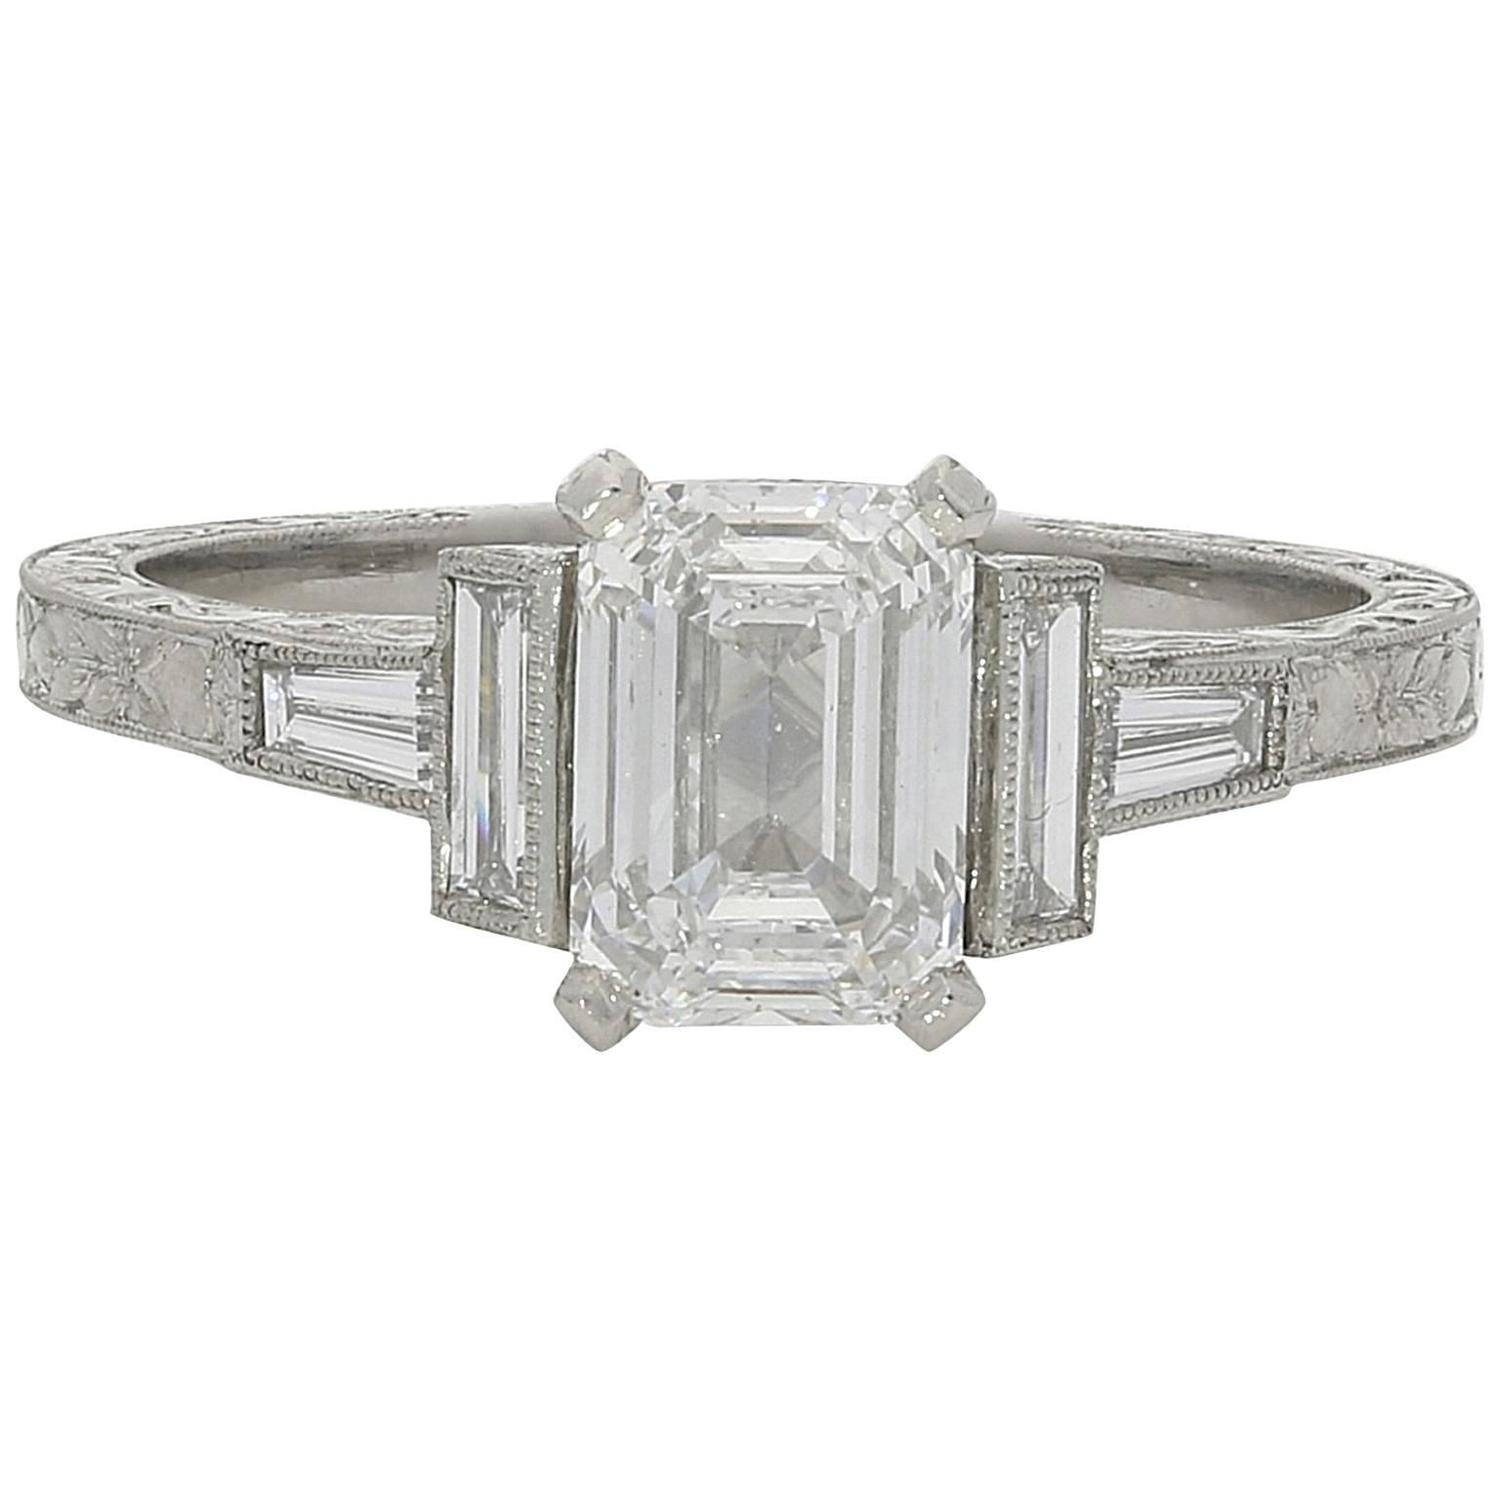 1 21ct D VS2 Emerald Cut Diamond Ring With Diamond Baguette Accents at 1stdibs